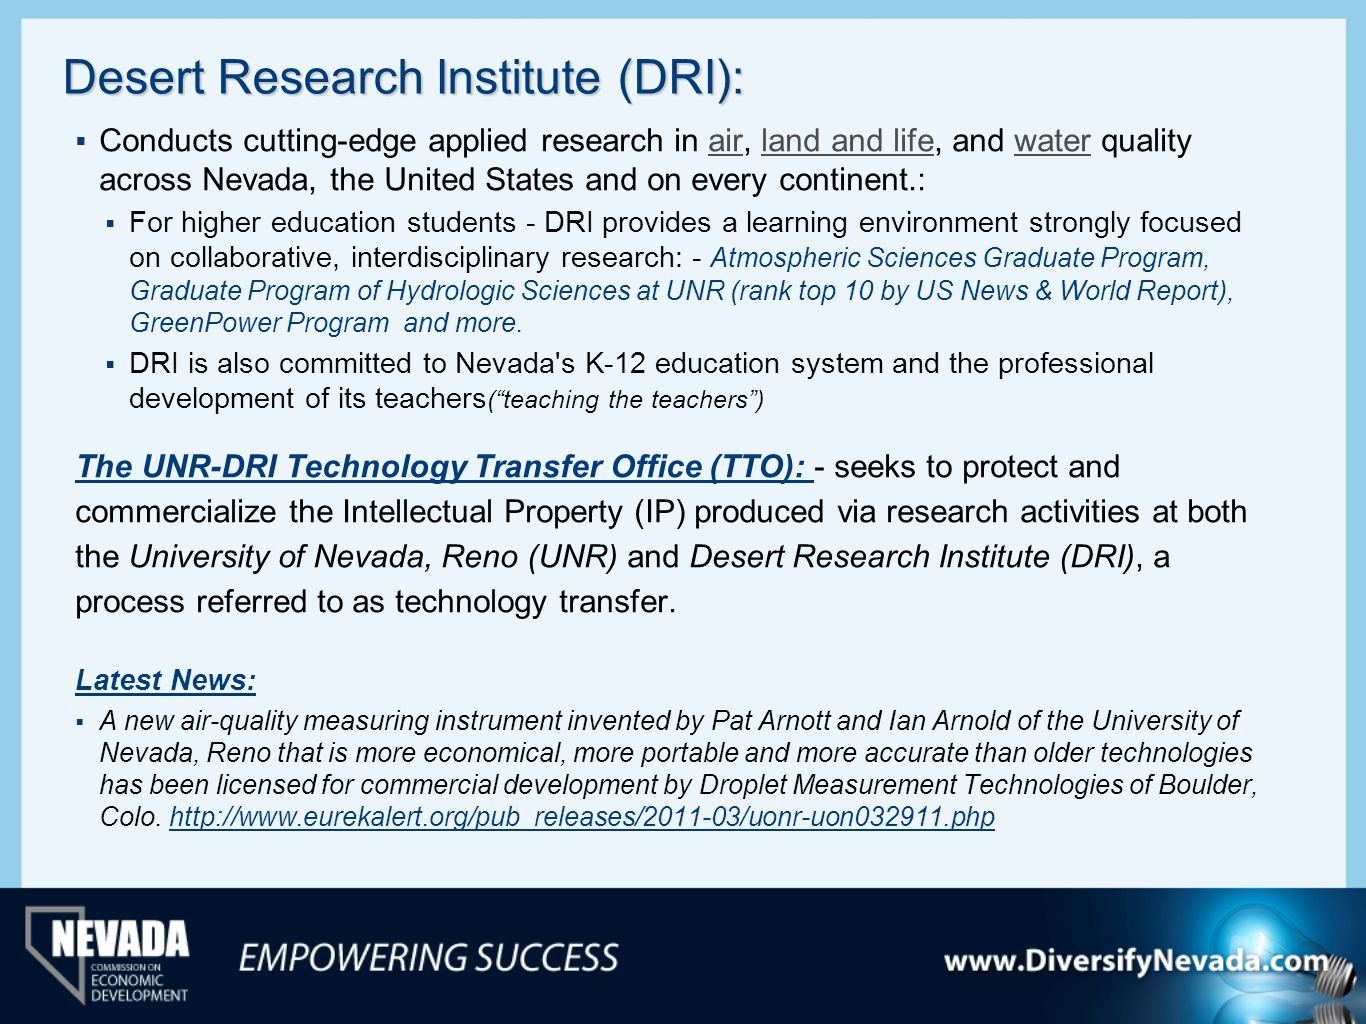 Desert Research Institute (DRI):